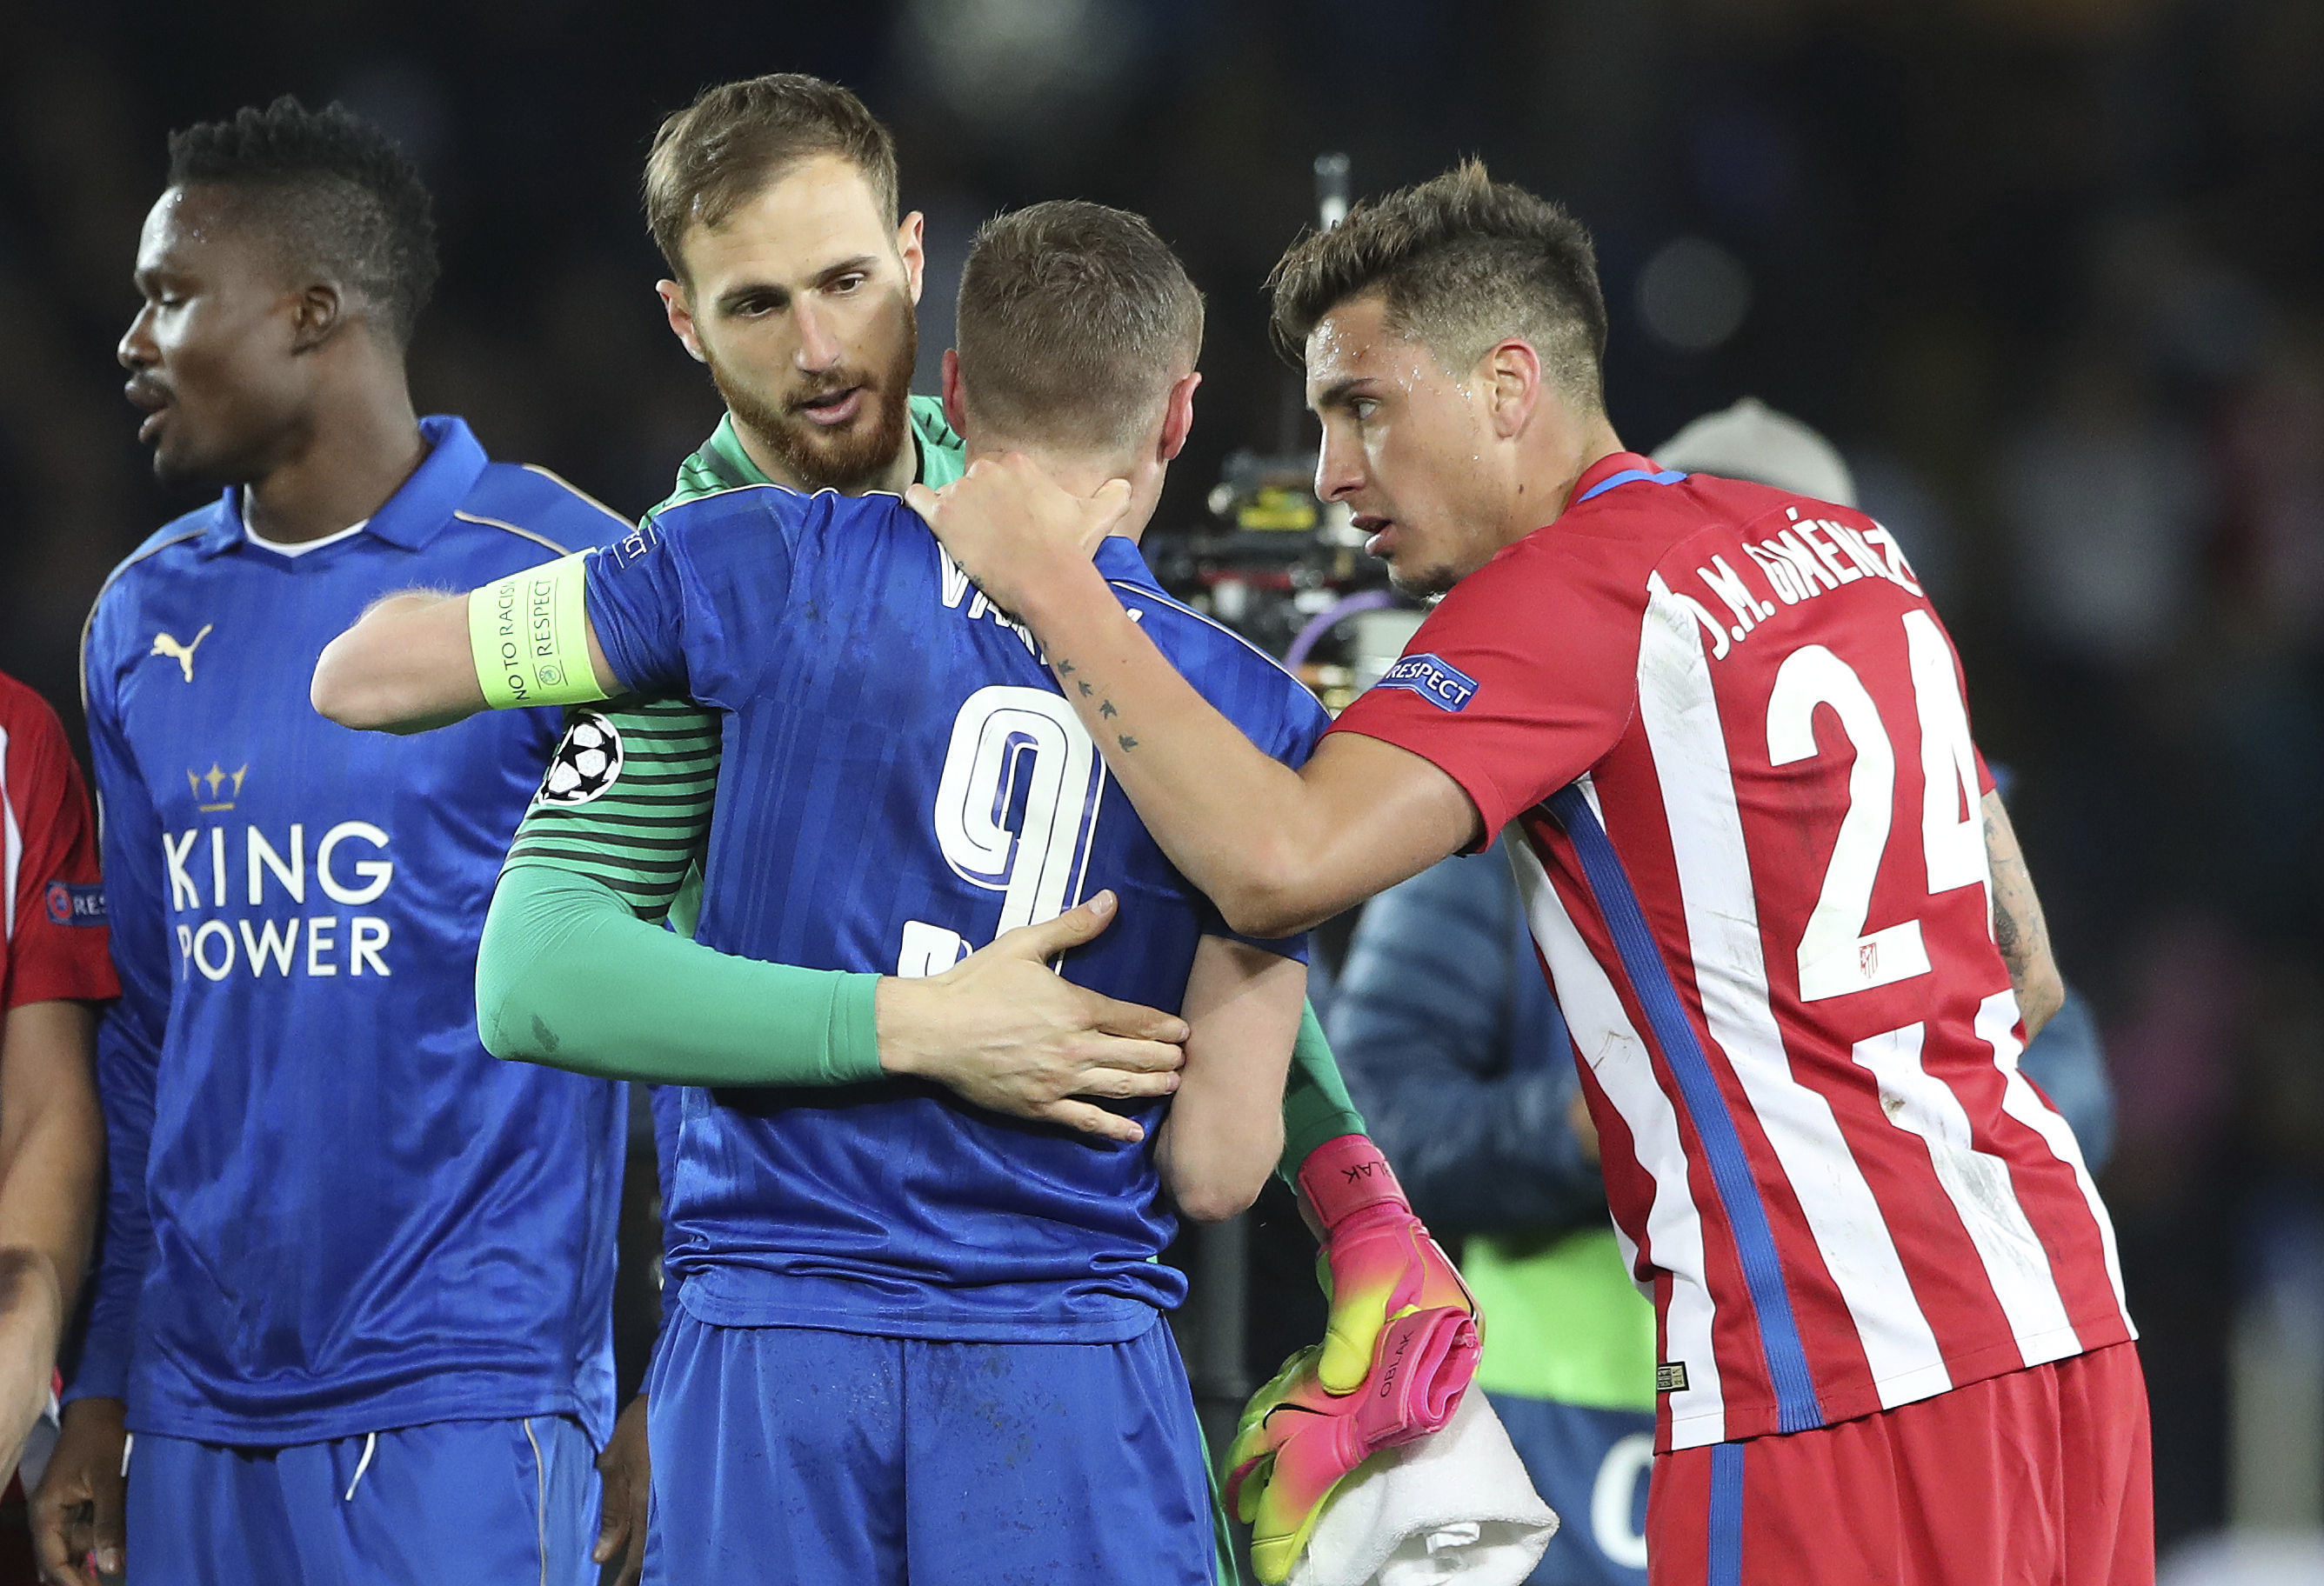 Leicester City's Jamie Vardy, centre, is consoled by Atletico Madrid's Jan Oblak and Jose Maria Gimenez, right, after the the second leg of the UEFA Champions League quarter final soccer match between Leicester City and Atletico Madrid at the King Power Stadium in Leicester, Tuesday April 18, 2017. The match ended a 1-1 draw with Atletico advancing to the semifinals 2-1 on aggregate. (Nick Potts/PA via AP)